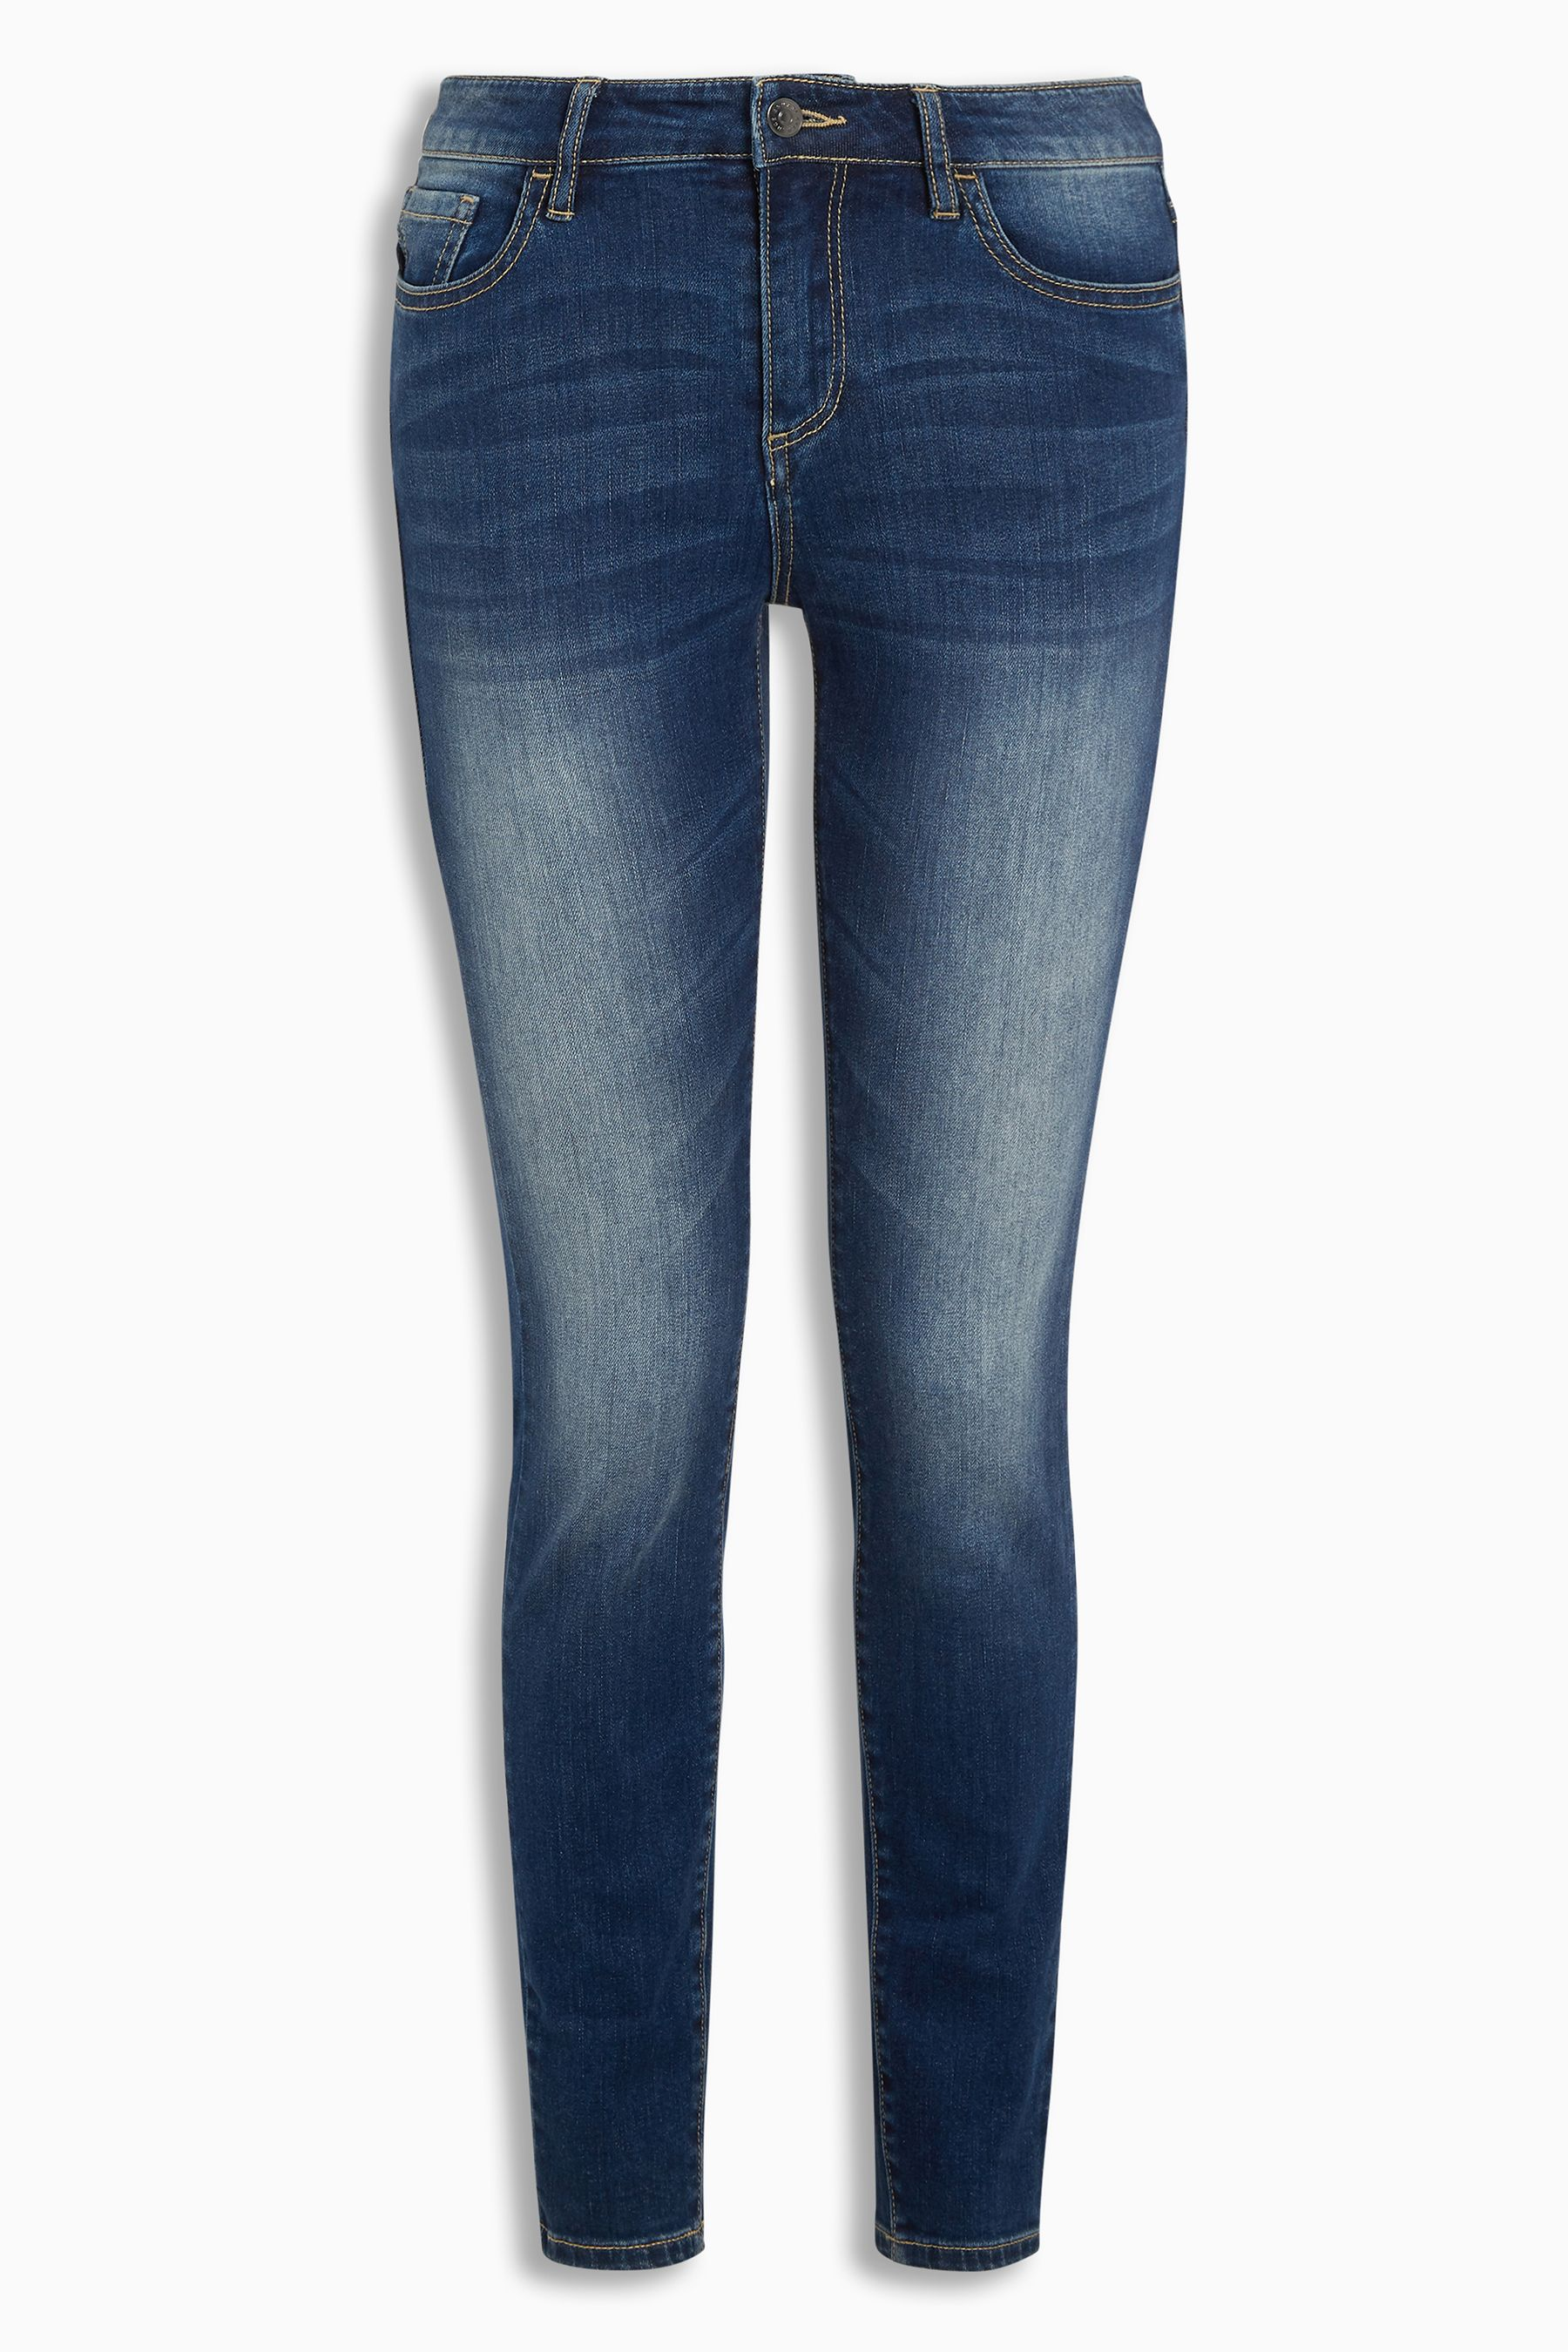 94d8e3582a9a Womens Armani Exchange Mid Wash J01 Skinny Jean - Blue | Products ...